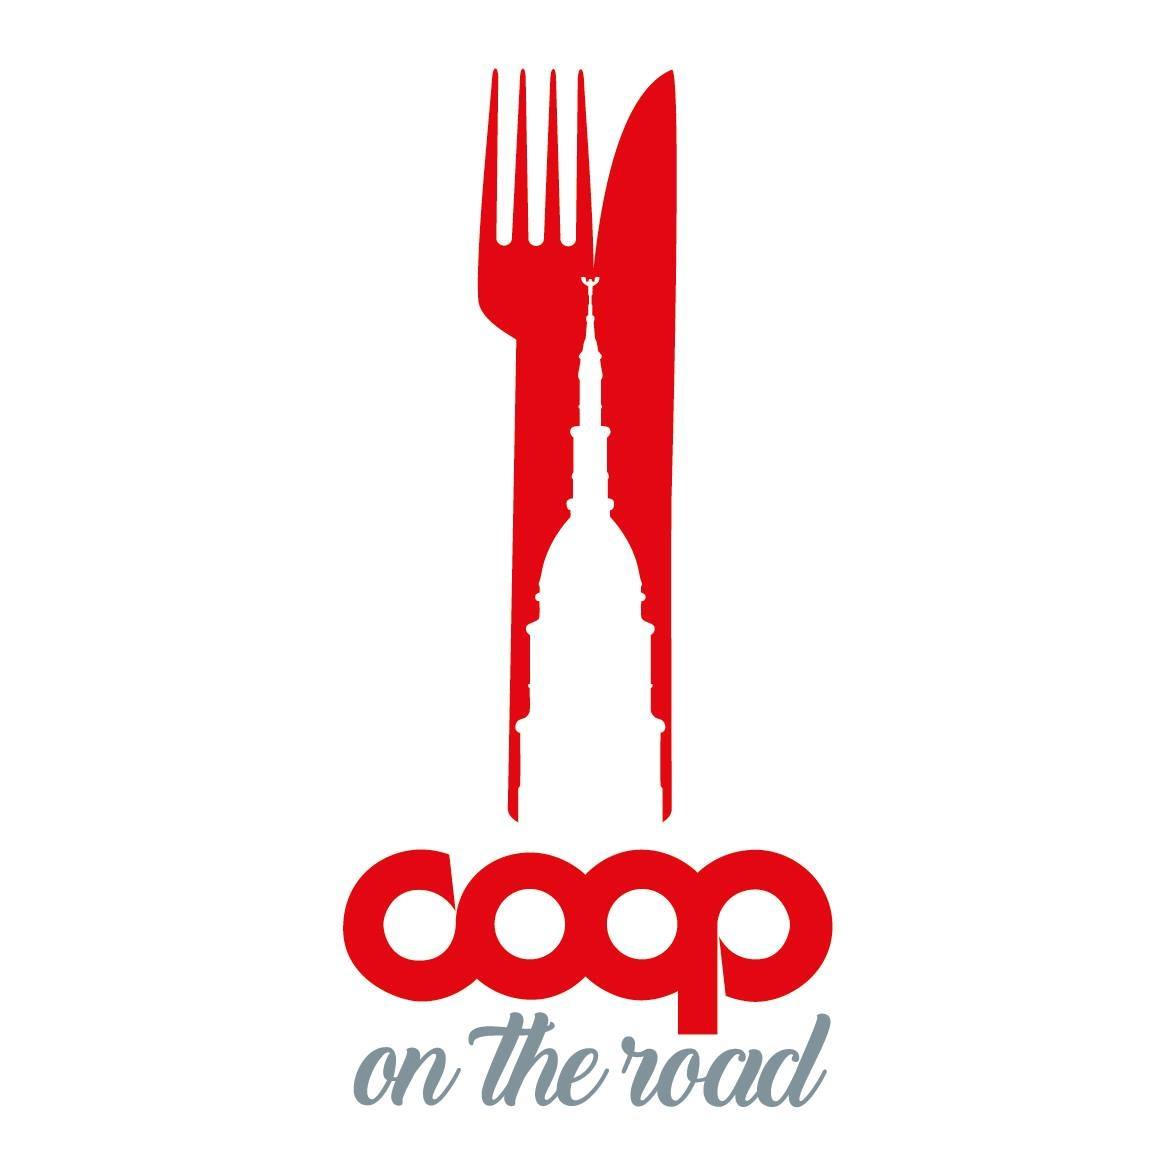 logo coop on the road